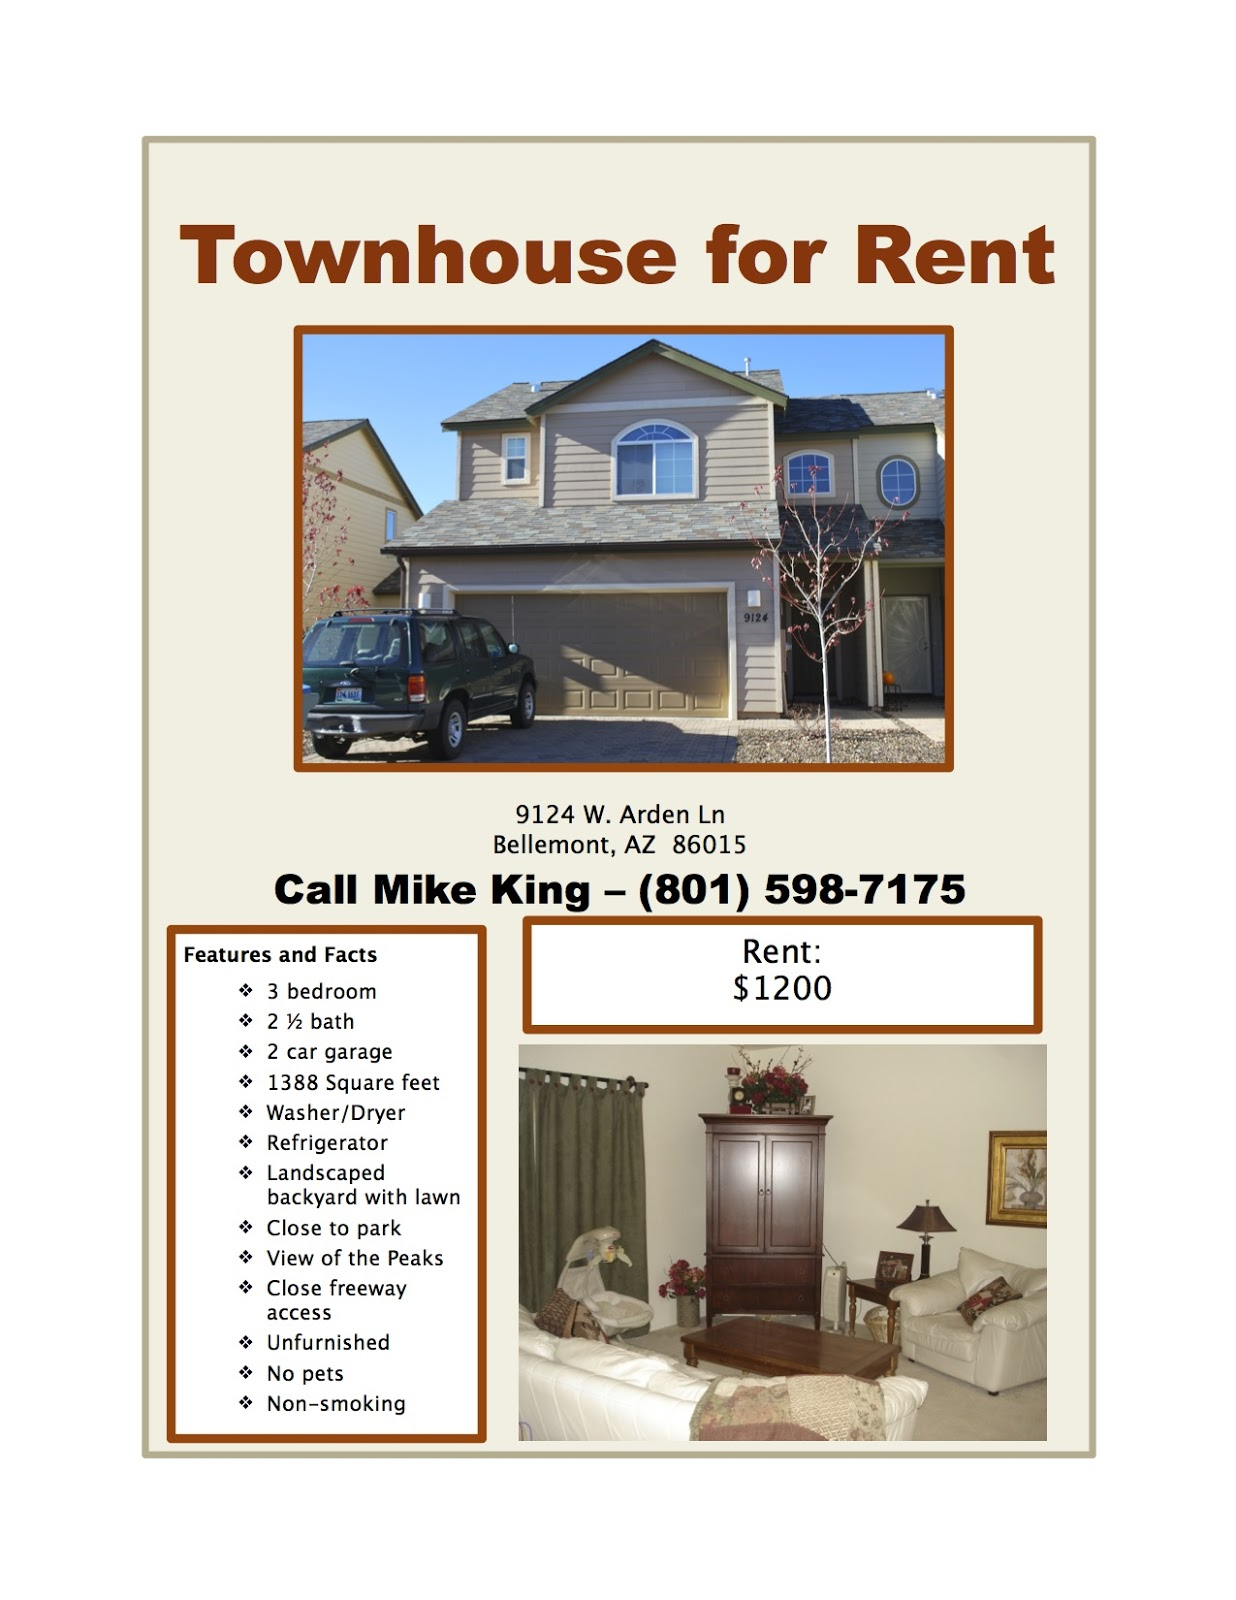 Superior Rent Flyer Templates Regard To For Rent Flyer Template